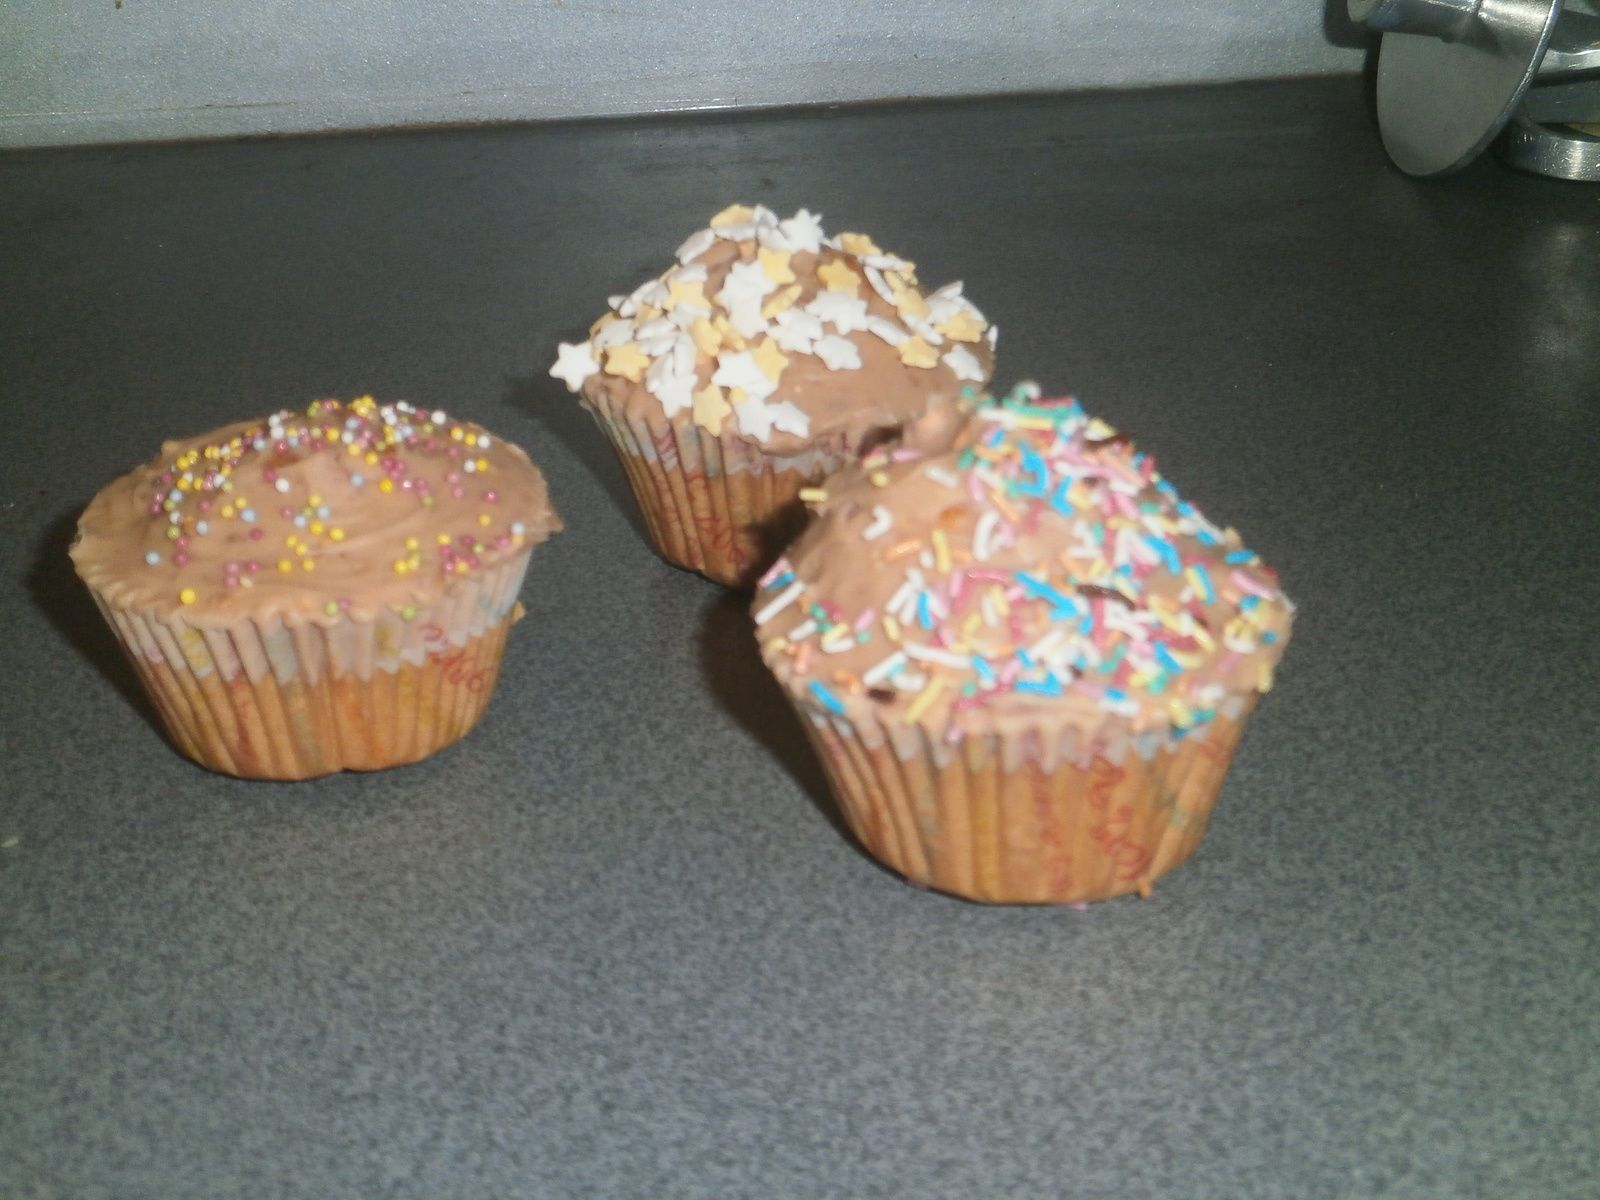 Cupcake aux chocobons